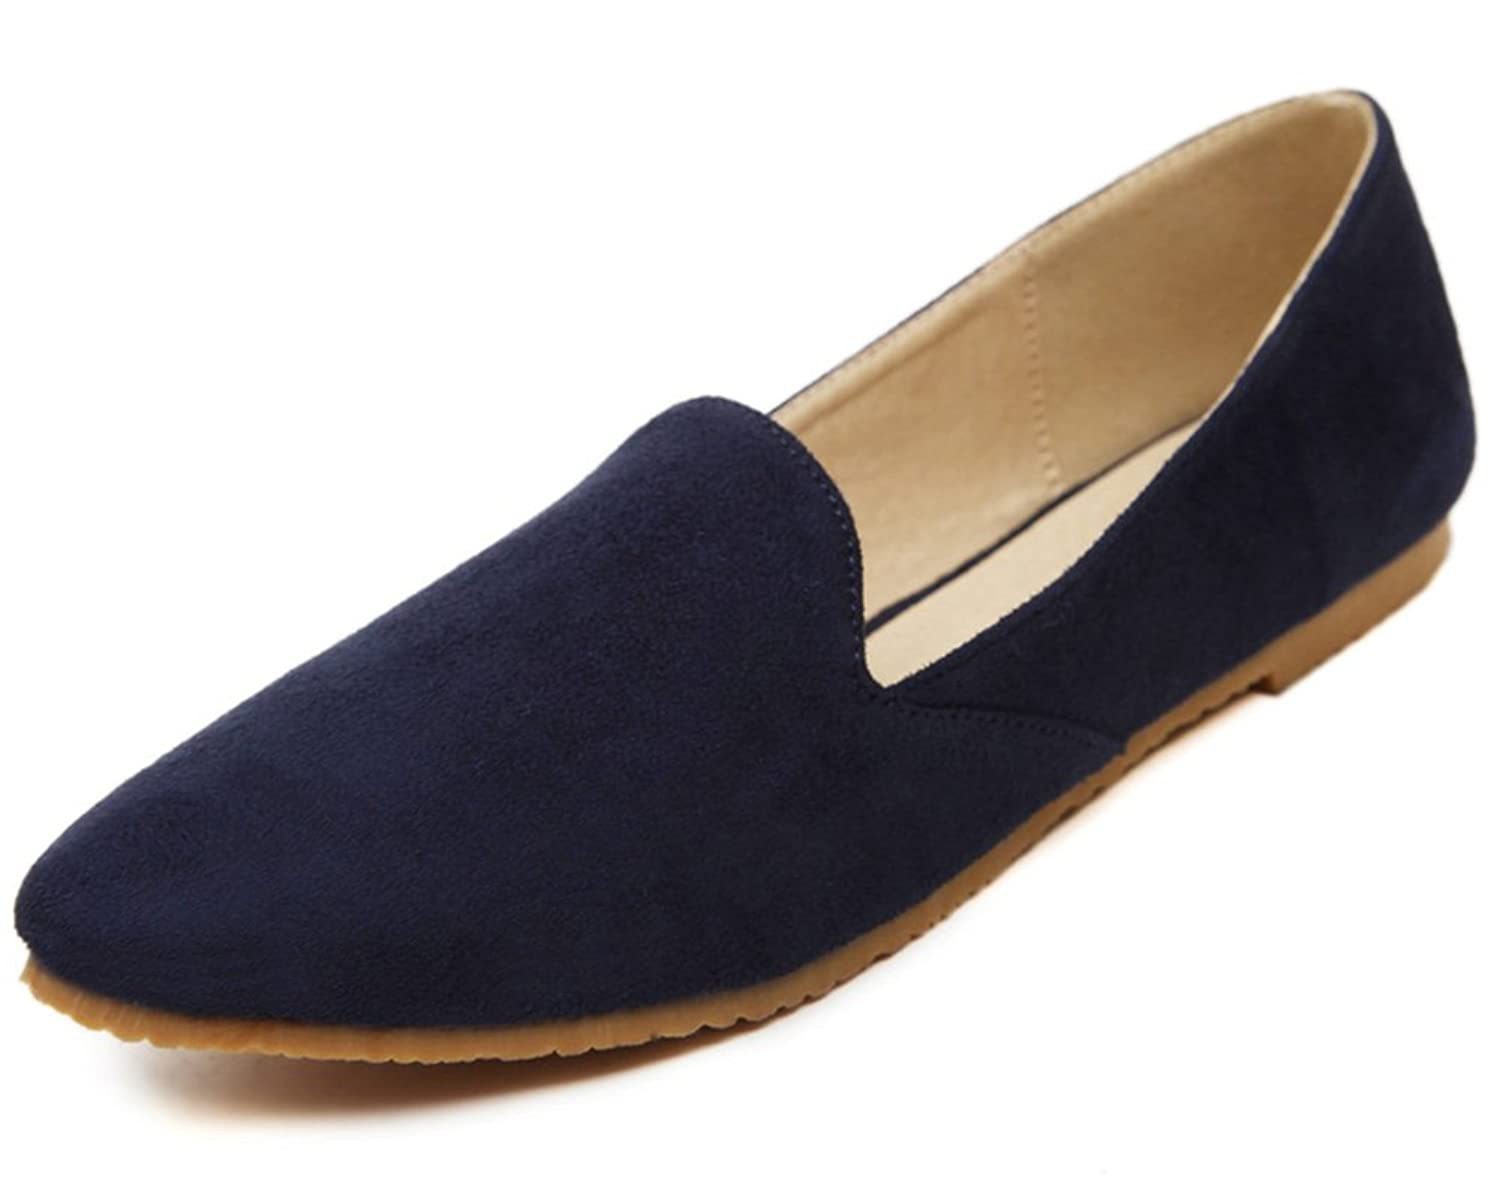 Aisun Women's Simple Comfy Low Cut Flat Loafers